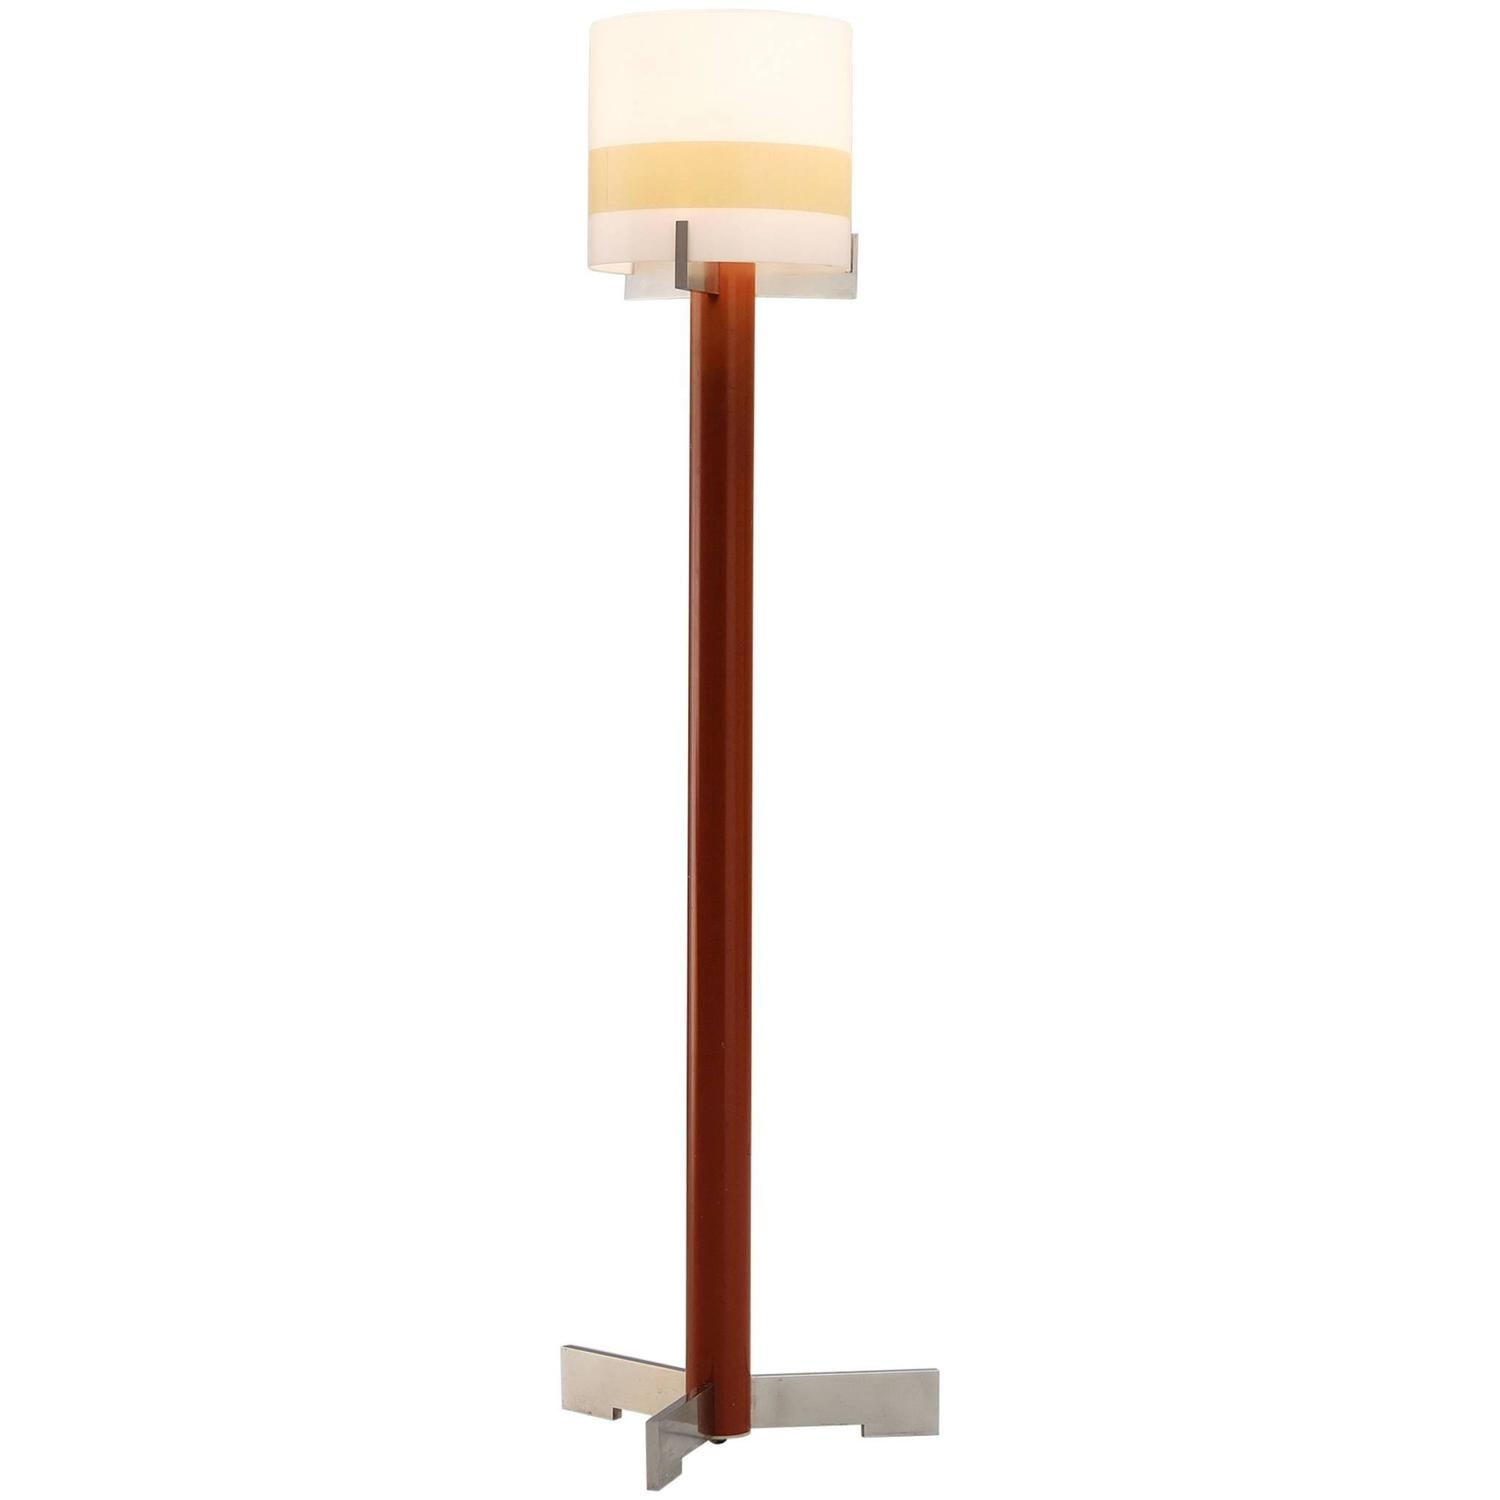 Red floor lamp in metal and glass for sale at 1stdibs for Red 5 light floor lamp